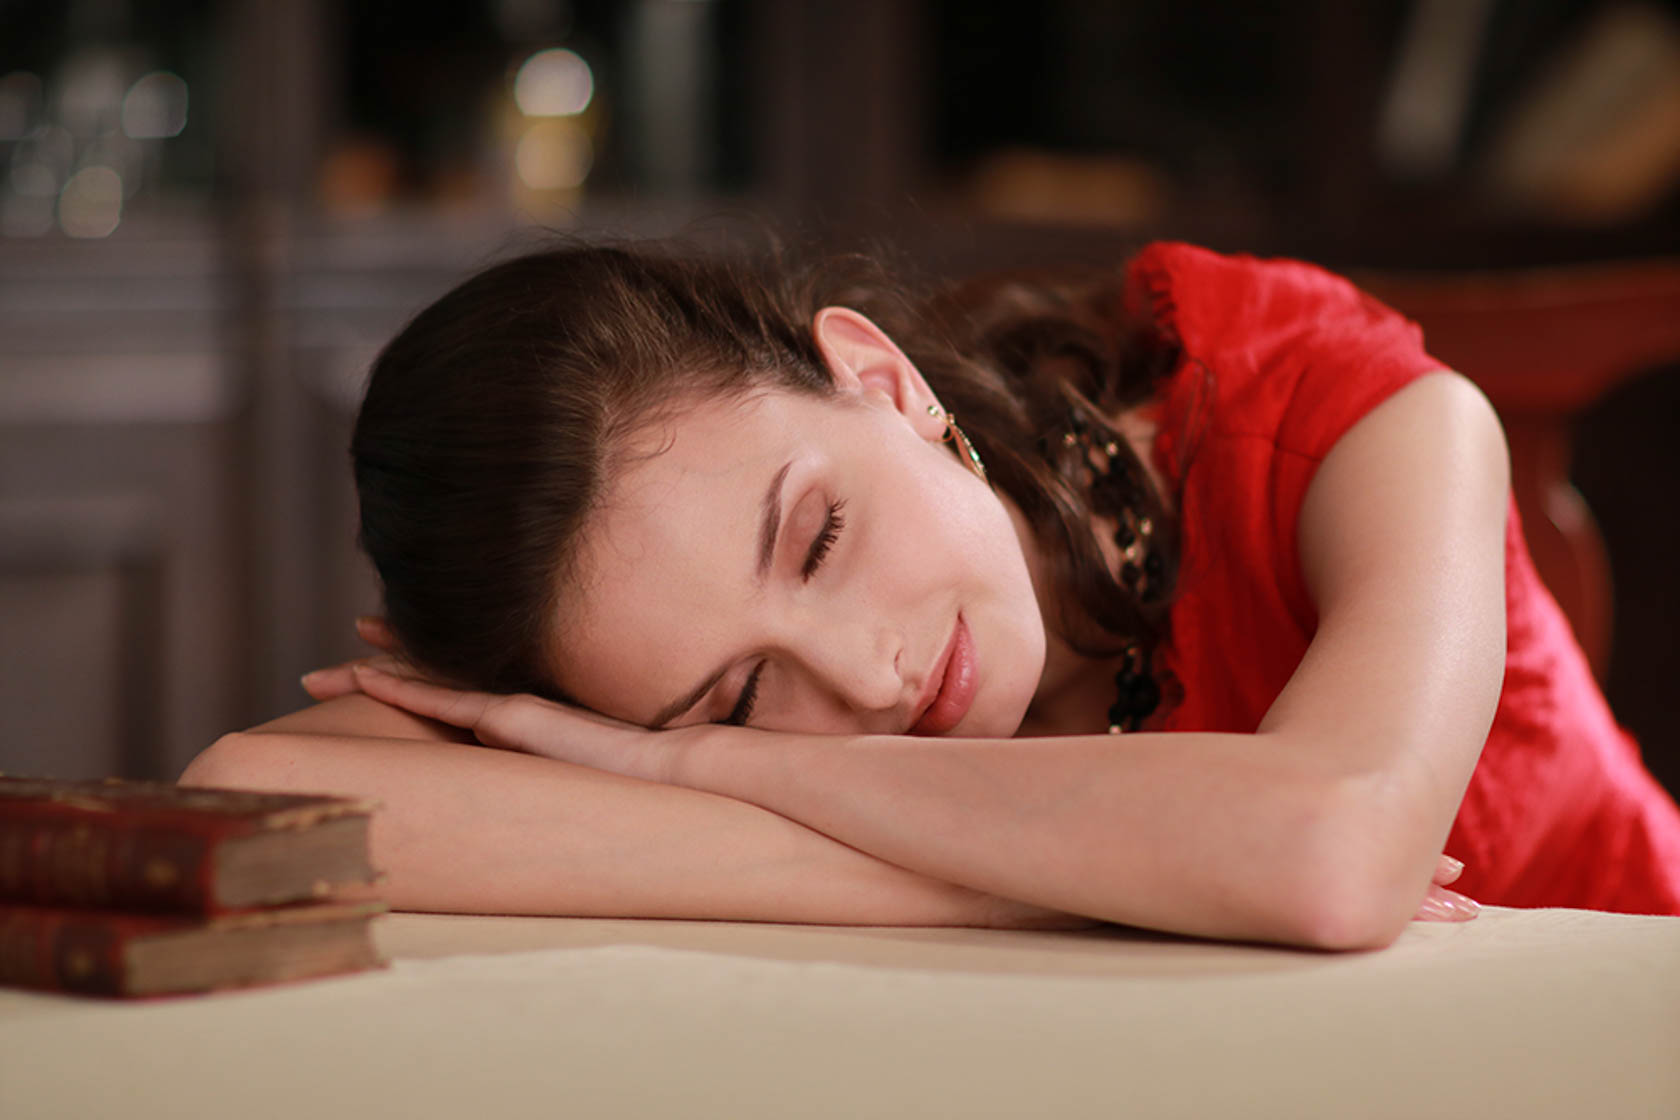 Girl sleeping on a desk taken with the Canon EOS 760D digital SLR camera